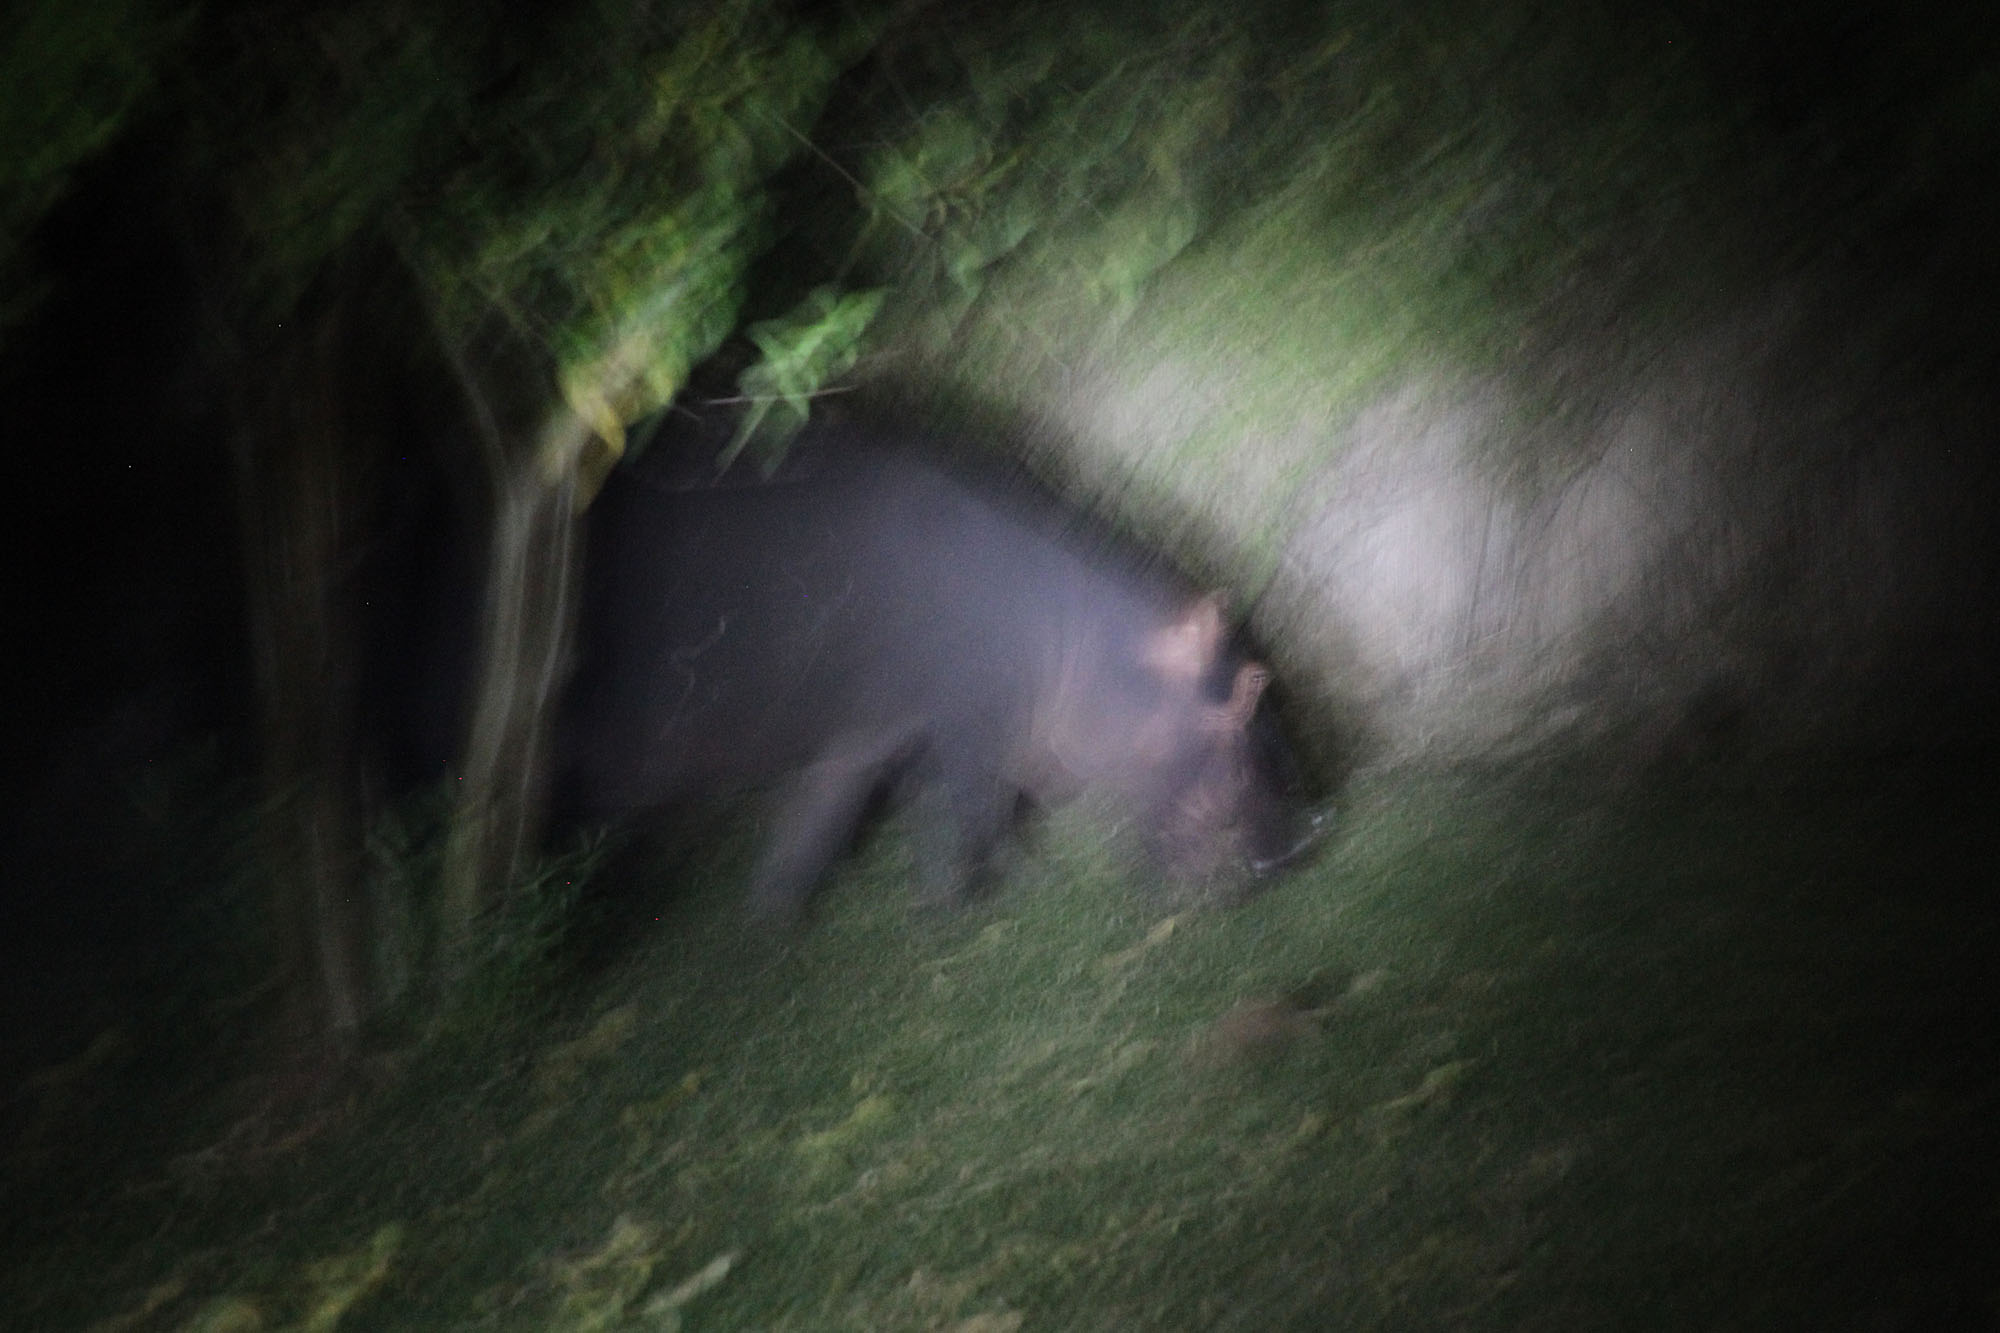 Hippo - [long exposure with the only lighting from a couple of flashlights]